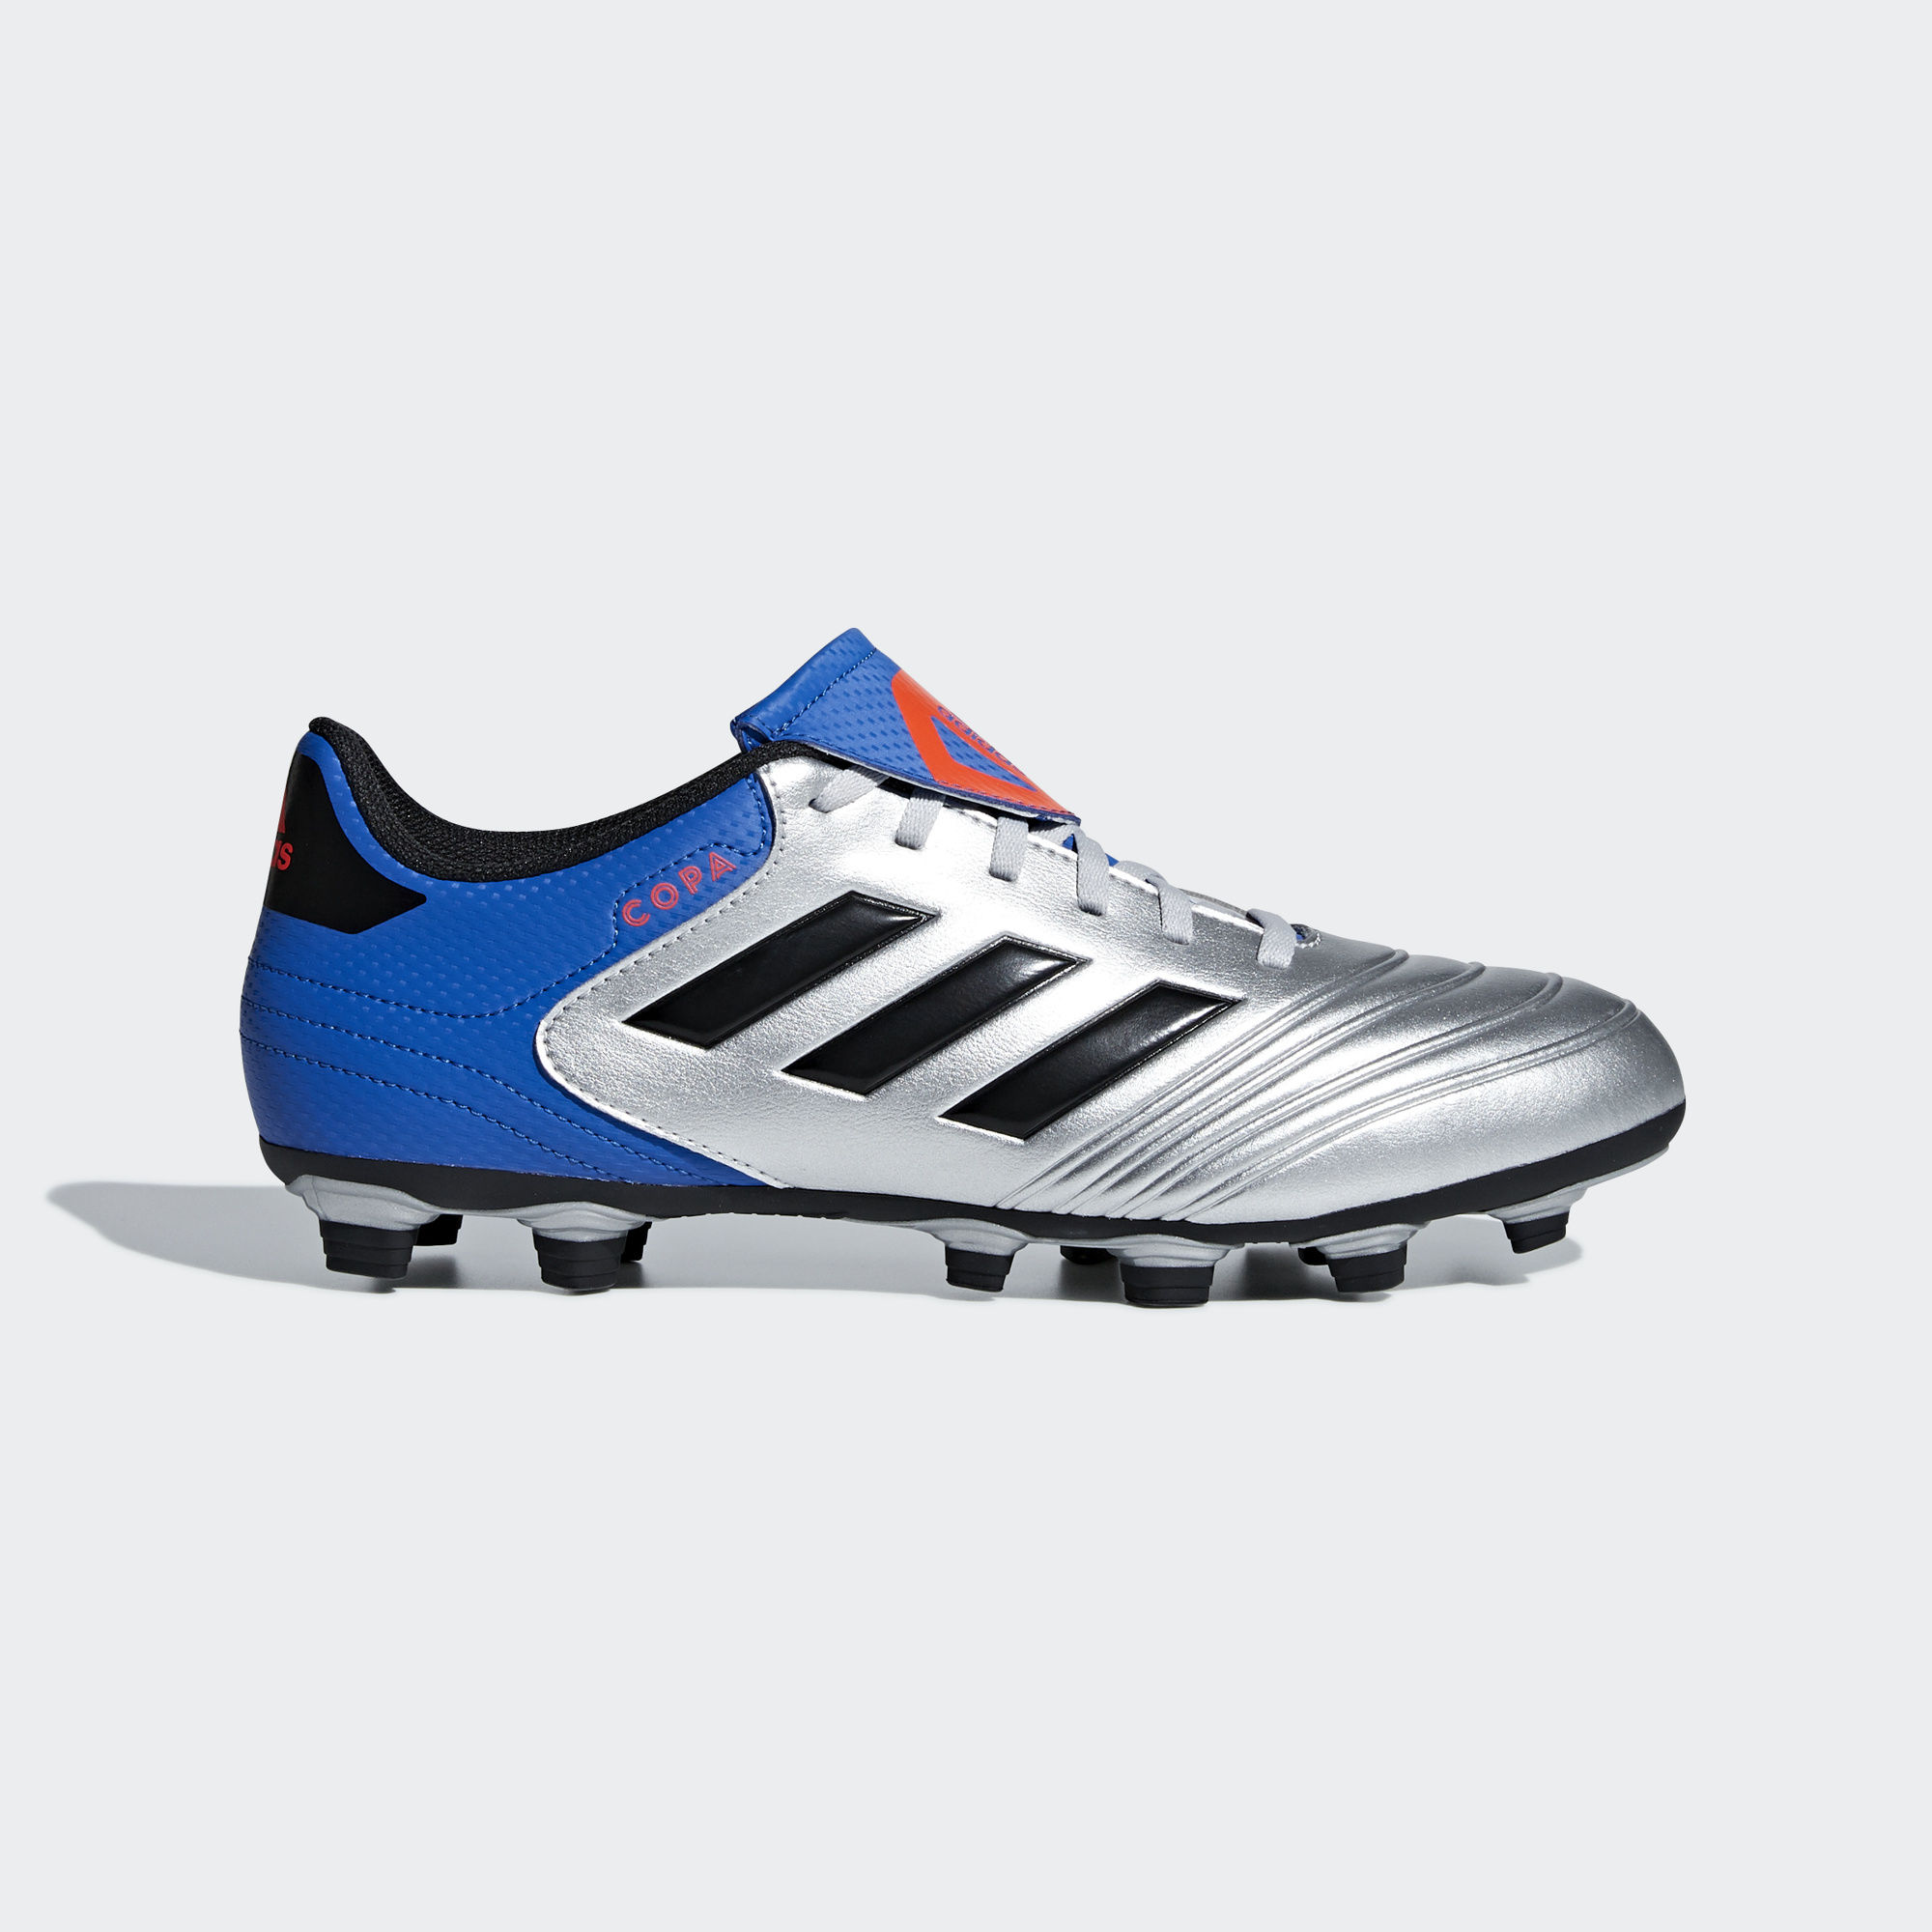 Football shoes adidas scarpe calcio Copa 18.4 FG Silver 2018